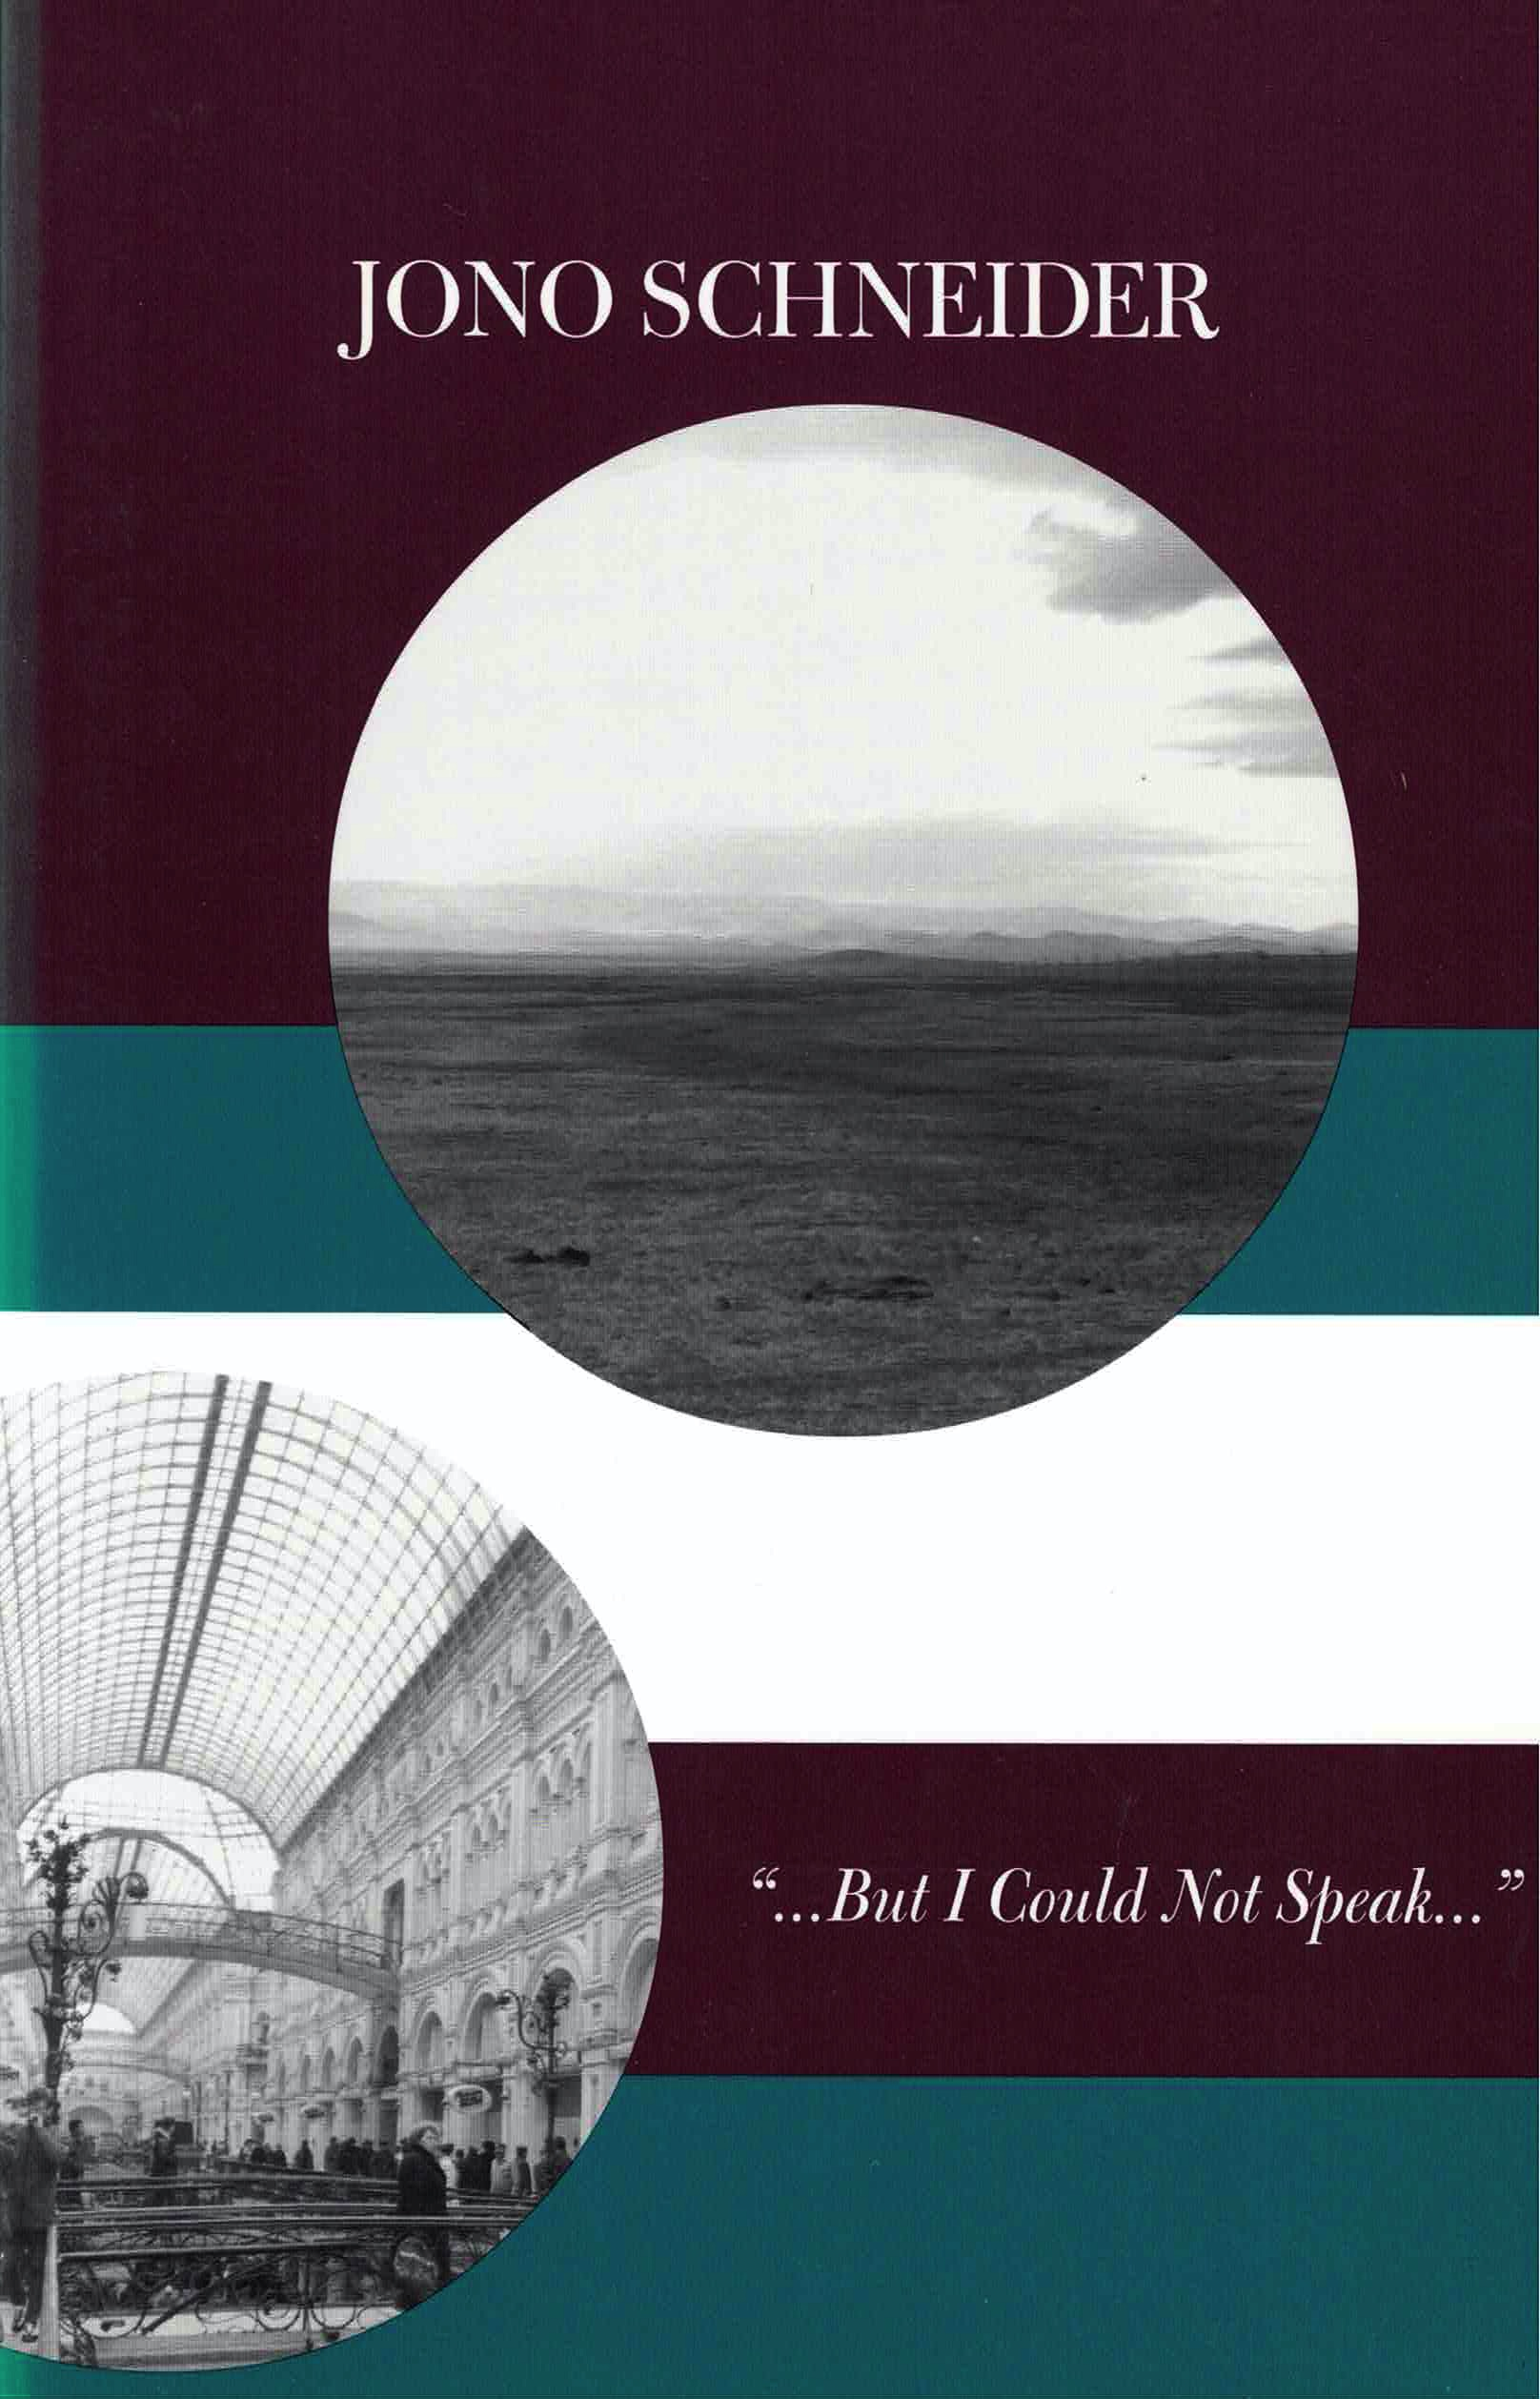 cover of But I Could Not Speak by Jono Schneider; large circular b&w image of bare landscape with horizon line, hills in the distance, and an open sky near top center, circular b&w image of inside of busy public building with arched ceiling windows and many columned archways falling off the page at bottom left, baclground is thick stripes of dark purple-brown, teal blue, and white